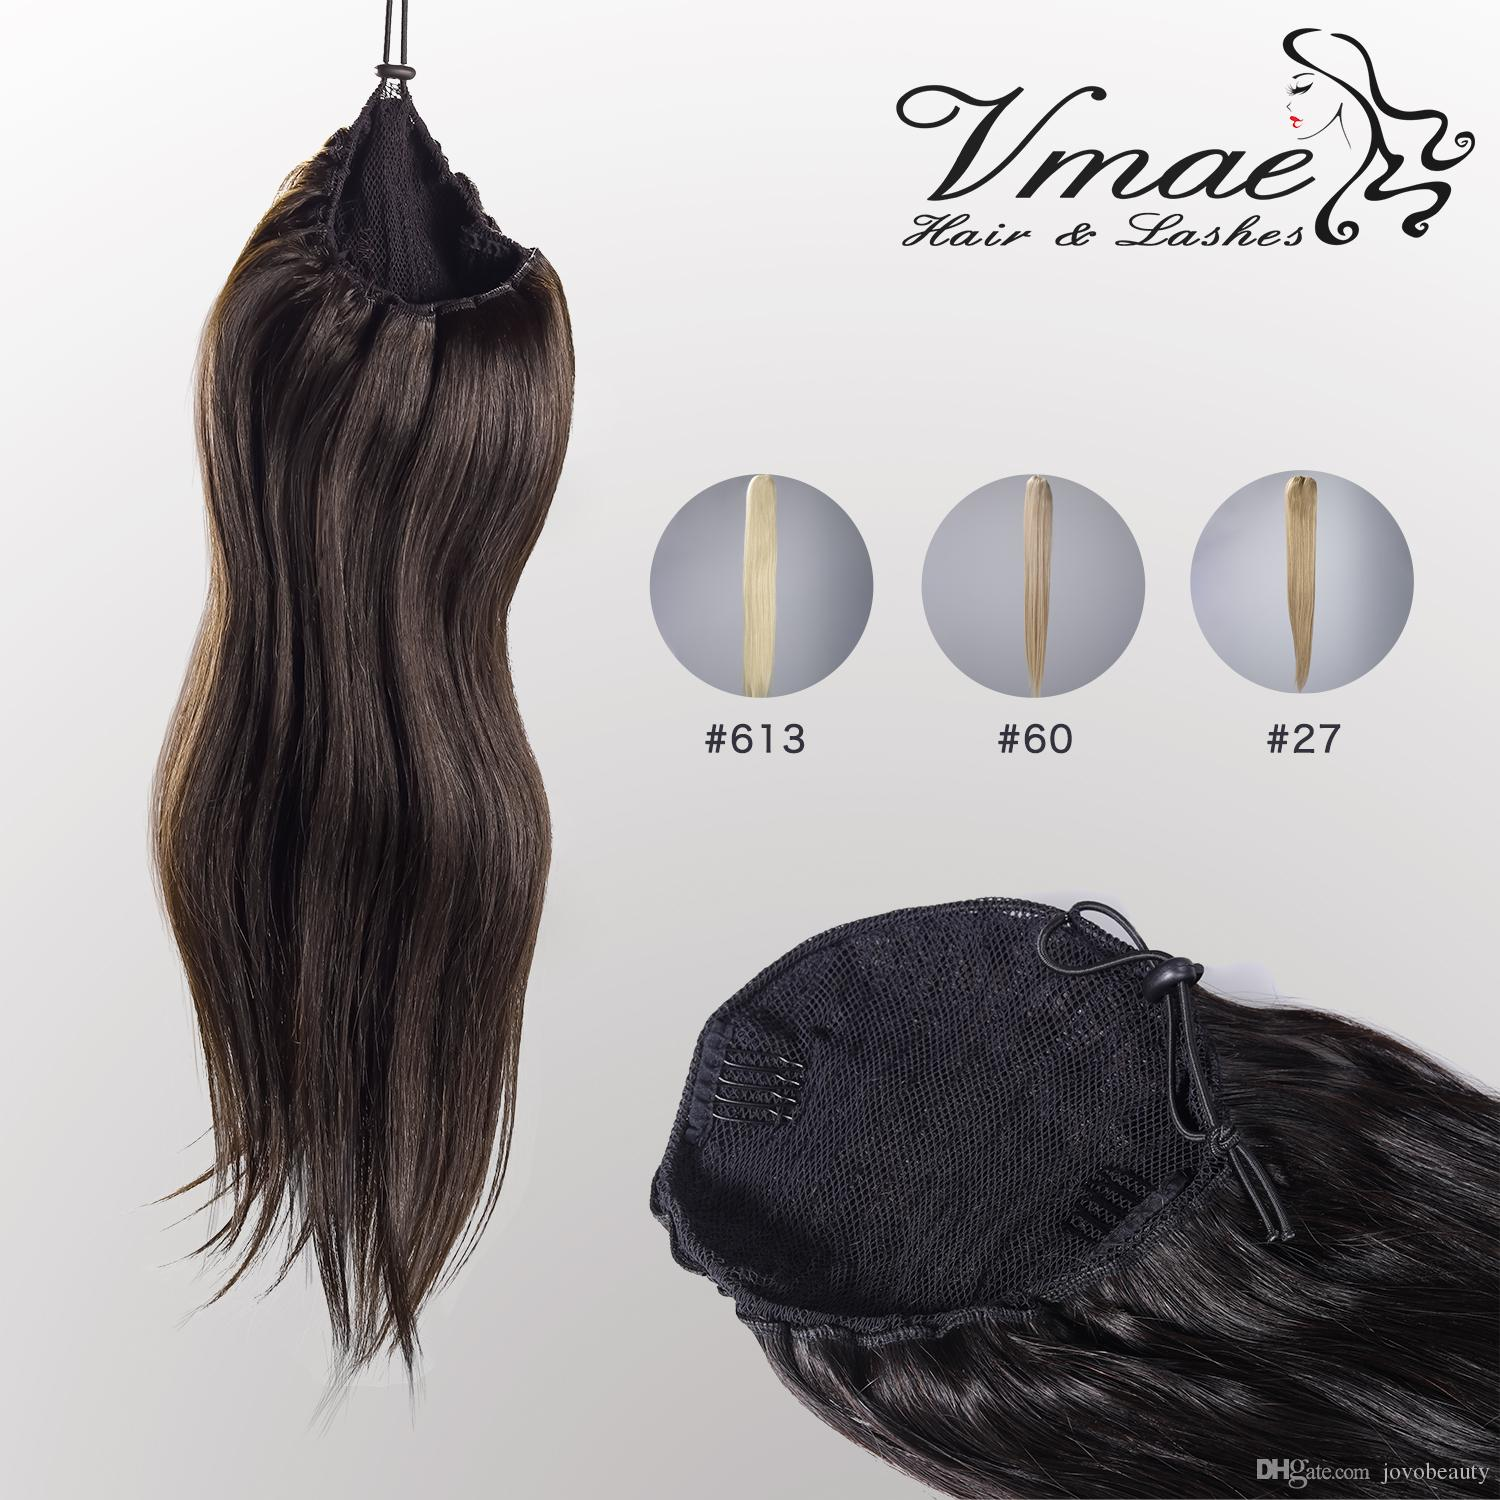 VMAE Straight Natural 613 Brown 120g 14 to 26 inch horsetail tight hole Clip In Drawstring Ponytail Human Virgin Hair Extension